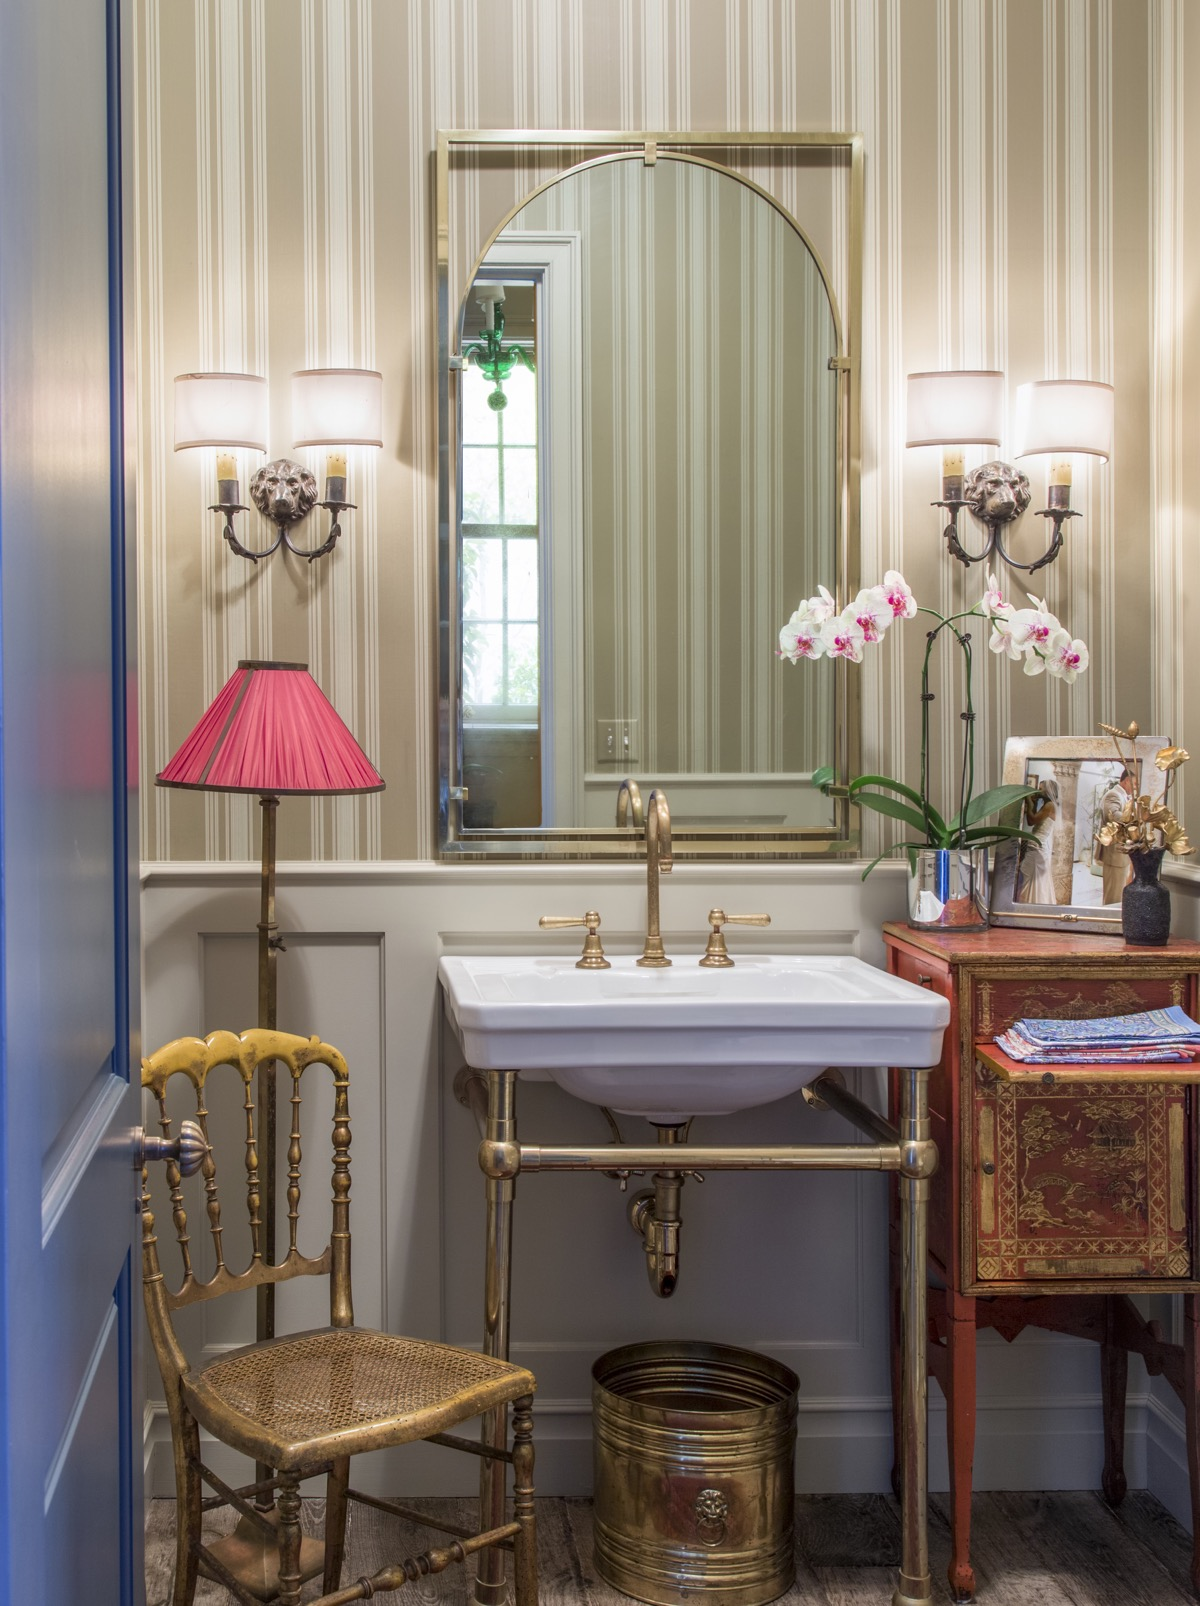 Powder bathroom with striped vertical wallpaper, ceramic basin with metal framework, matching wall sconces.